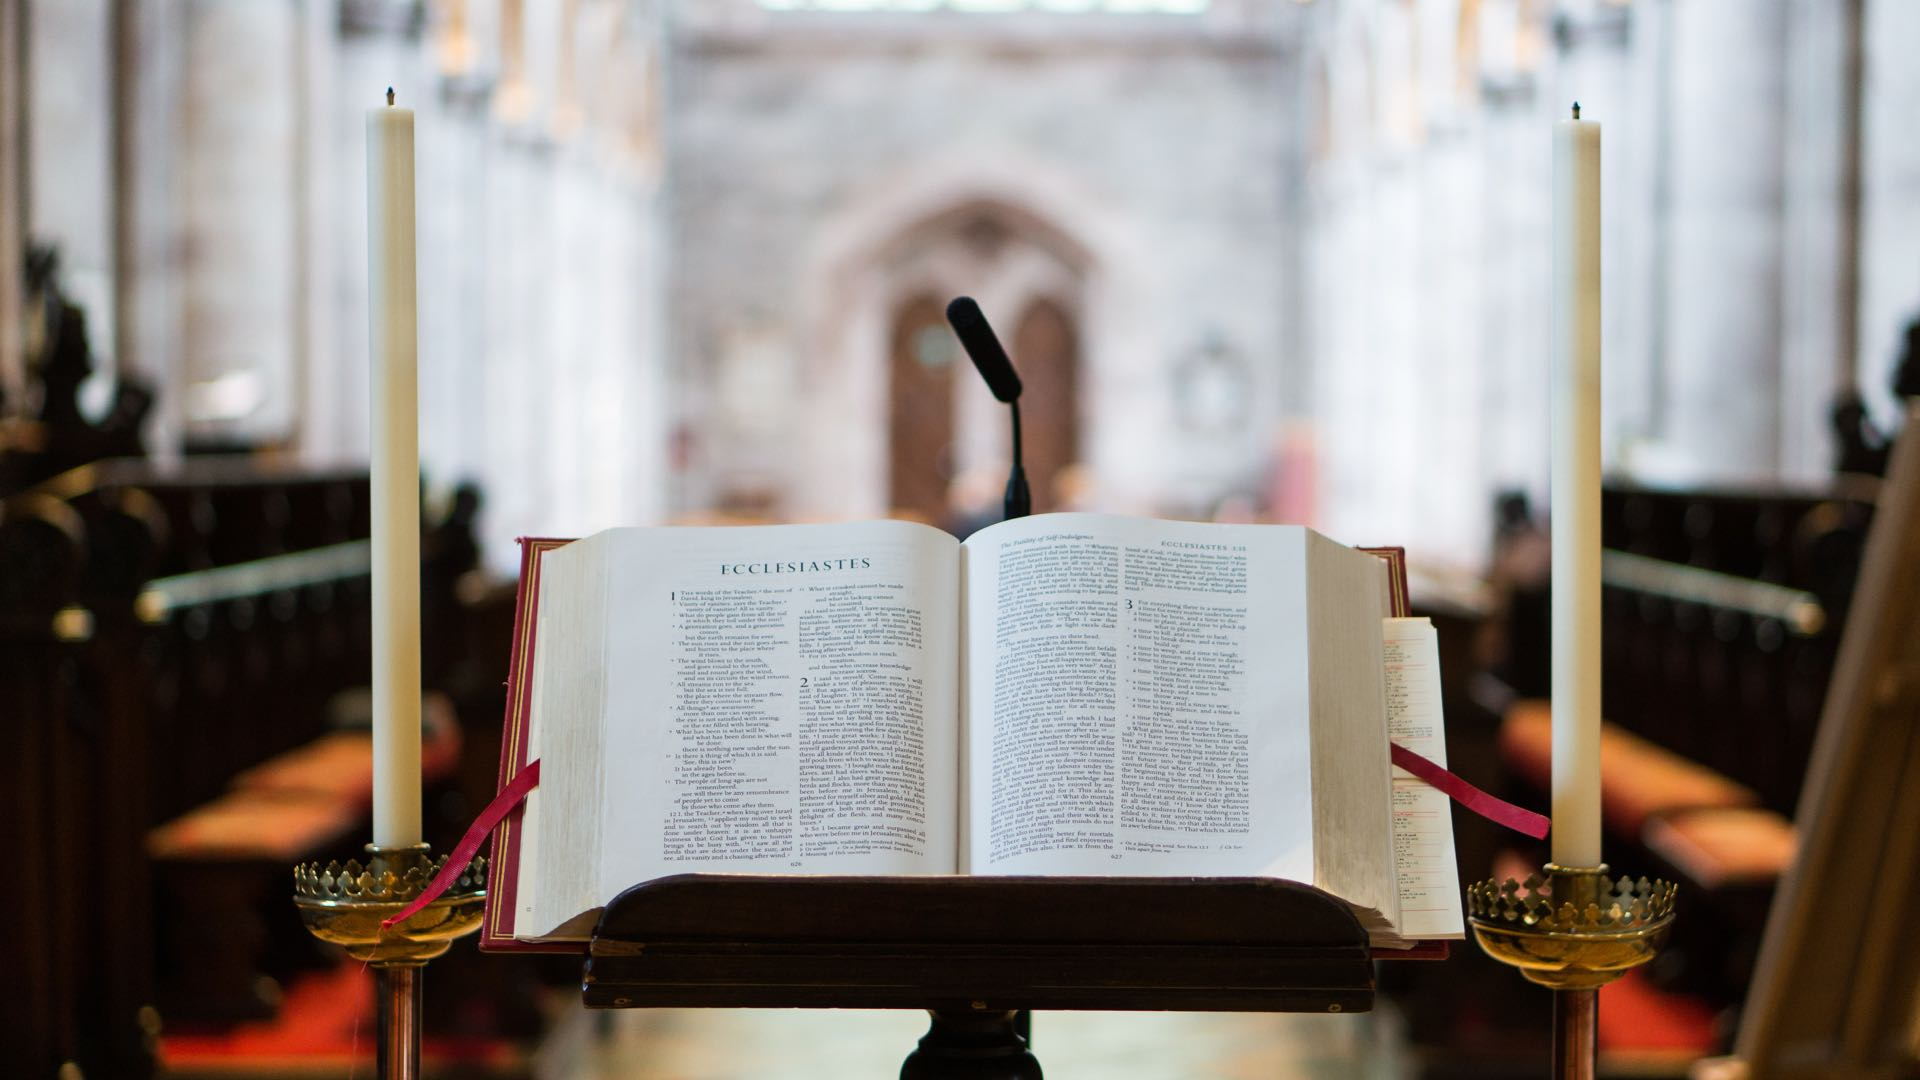 Bible sitting open at the altar of a church